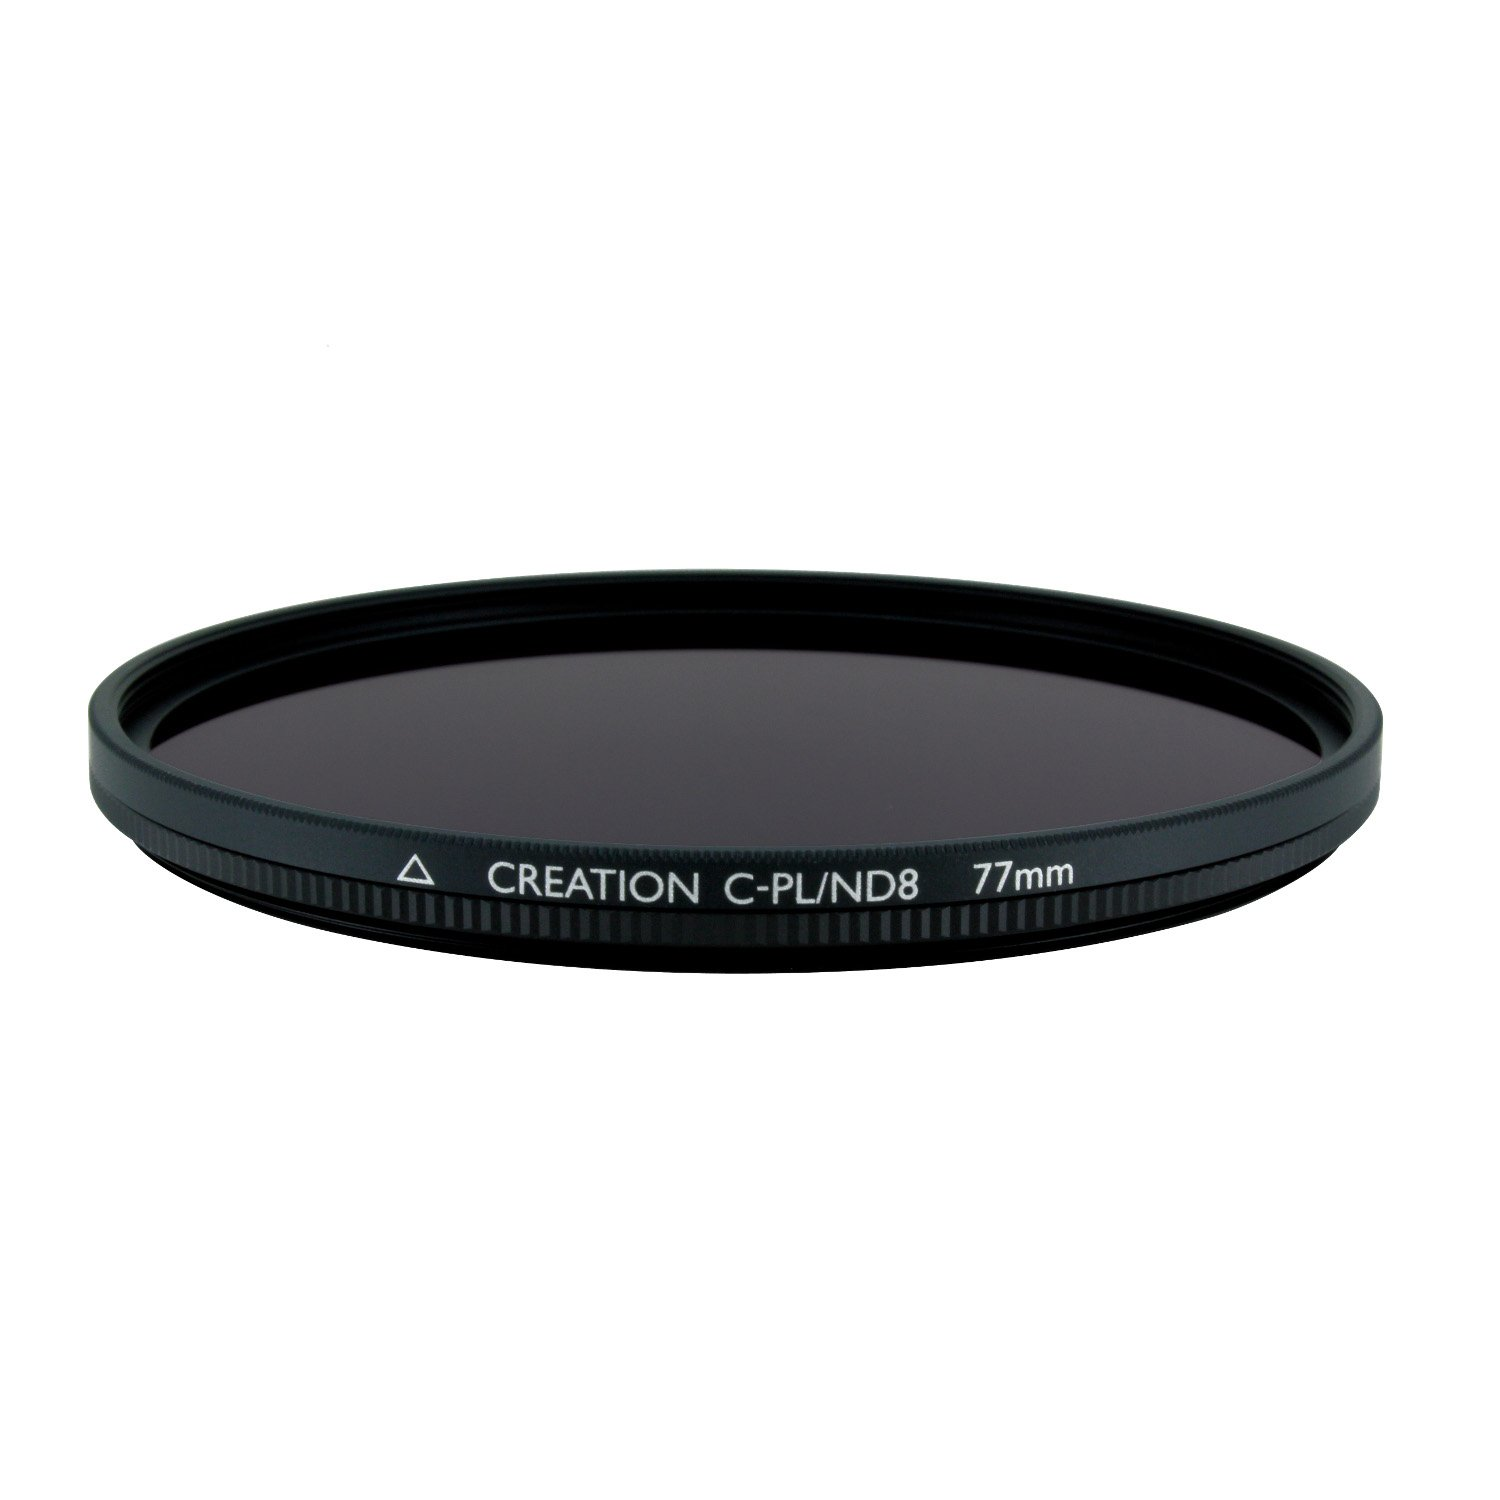 Marumi Filter For Camera Creation 77 mm C-Pl / ND 8 [For Contrast Rise / Reflection Removal + Light Reduction Filter] 094139 (japan import)